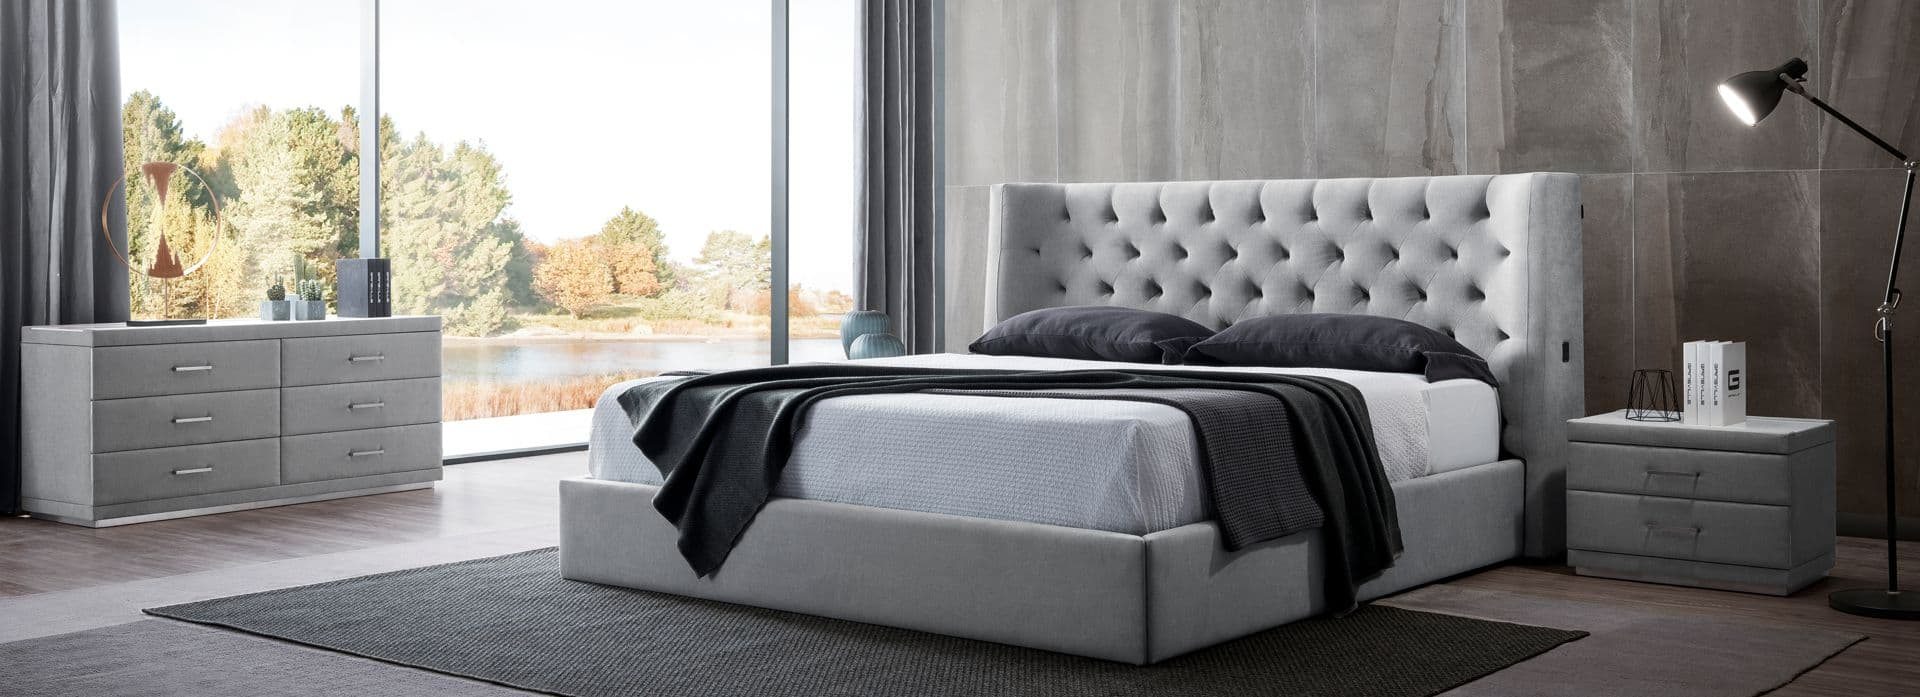 Storage Beds Australia Best Furniture Store Melbourne Australia Luxury Modern Furniture